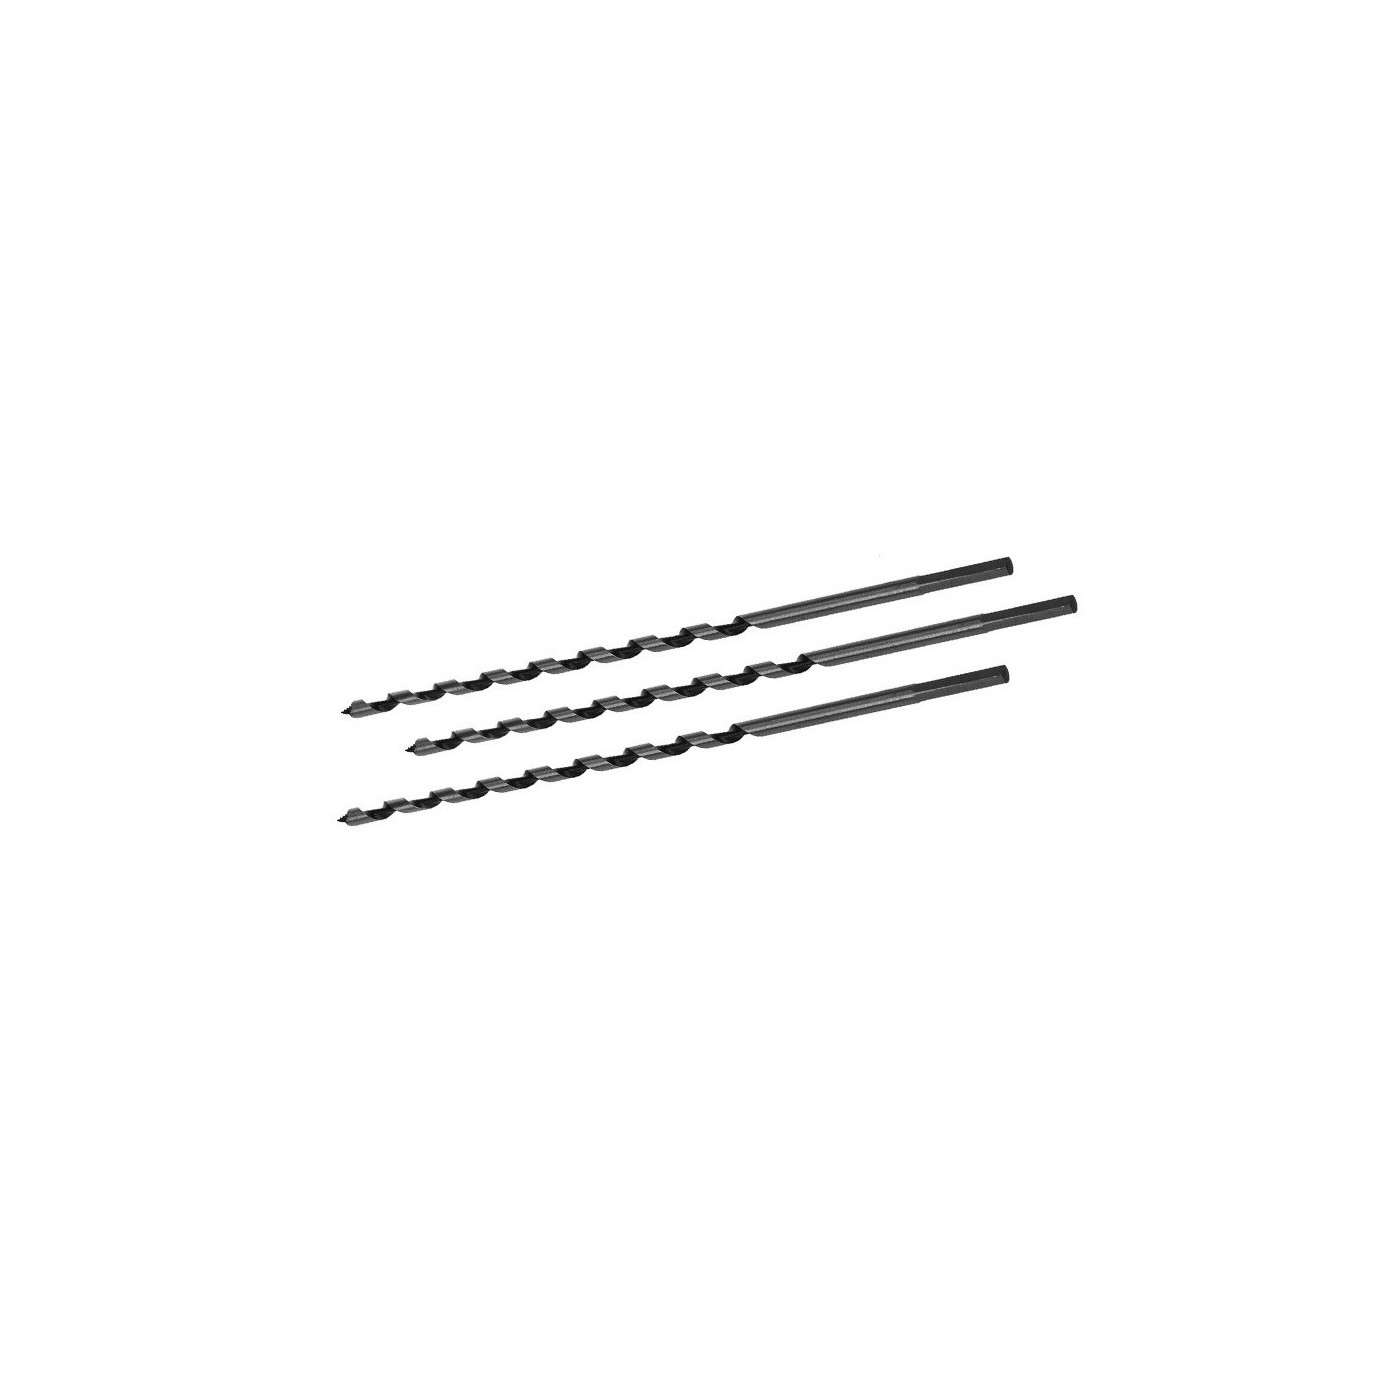 Set of 3 auger drill bits for wood, 8x230 mm